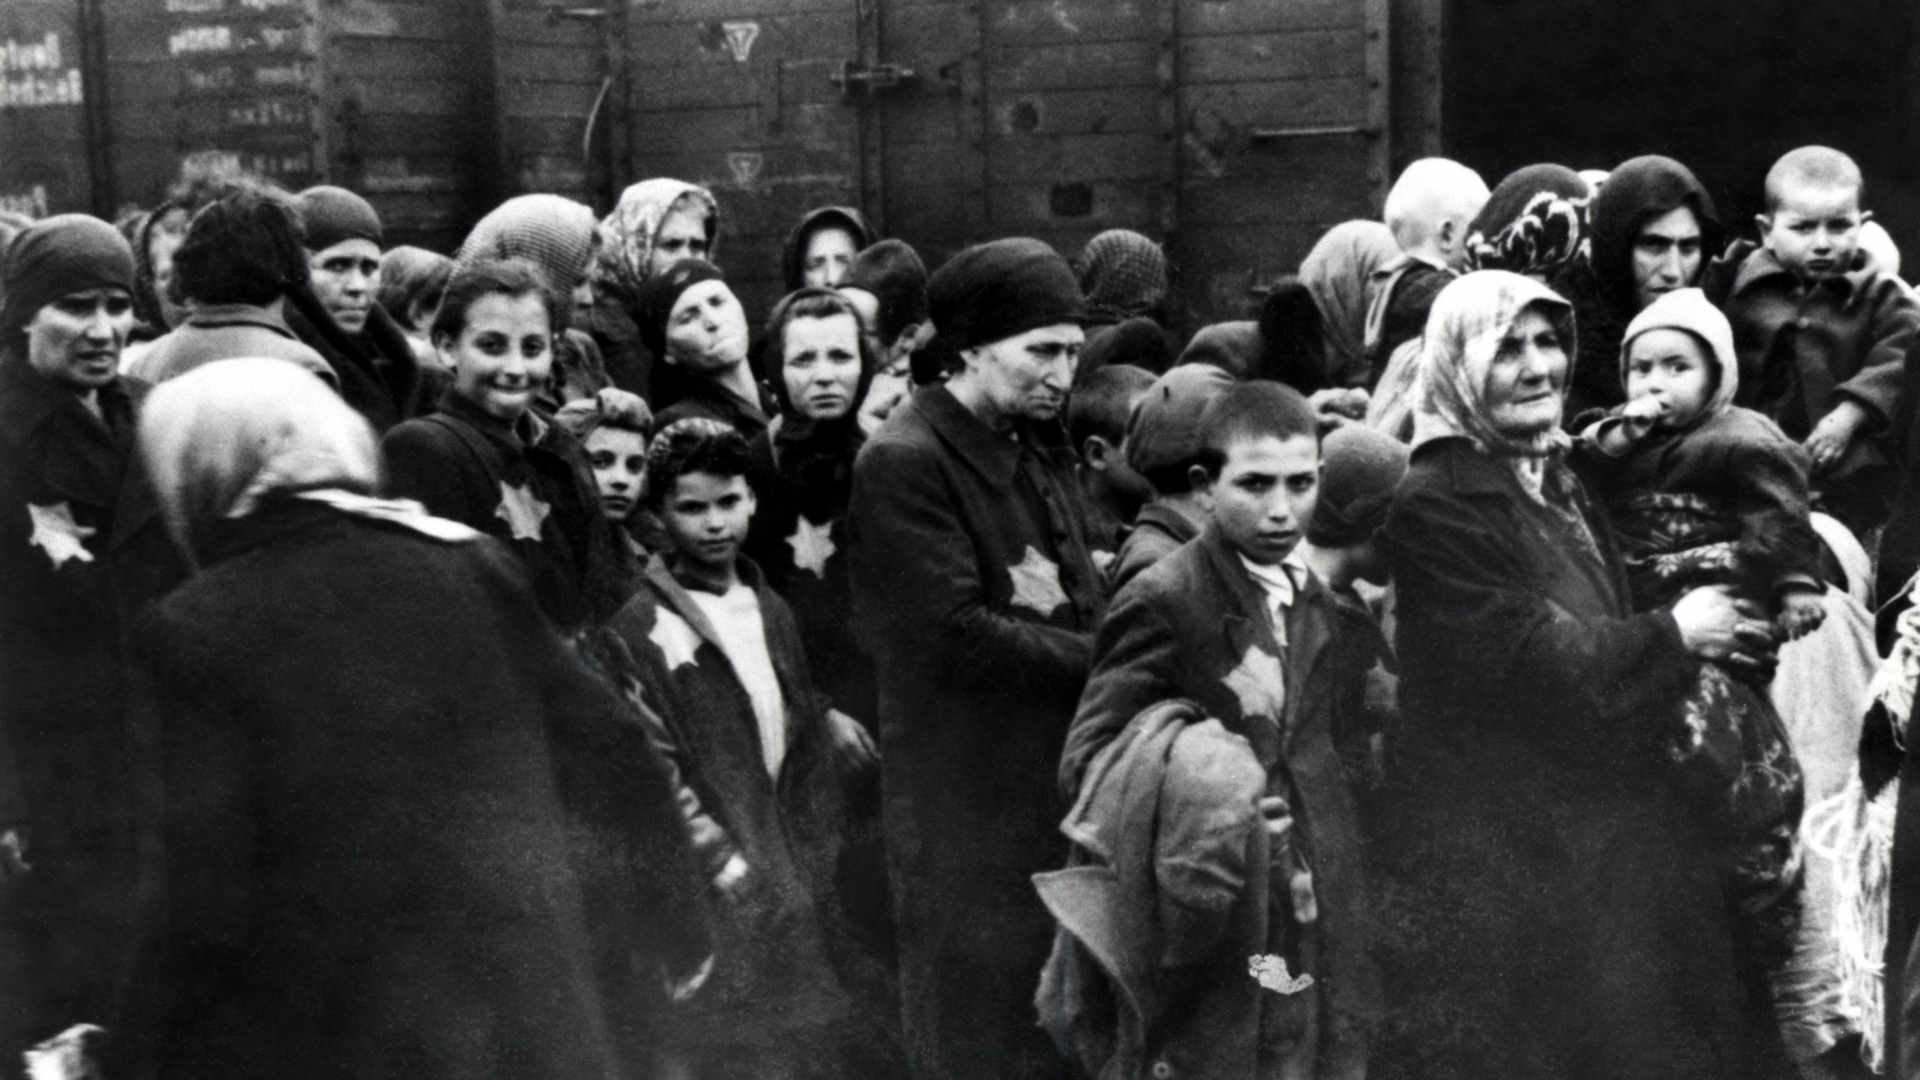 Hungarian Jews arriving at Auschwitz, 1944. (Credit: Galerie Bilderwelt/Getty Images)